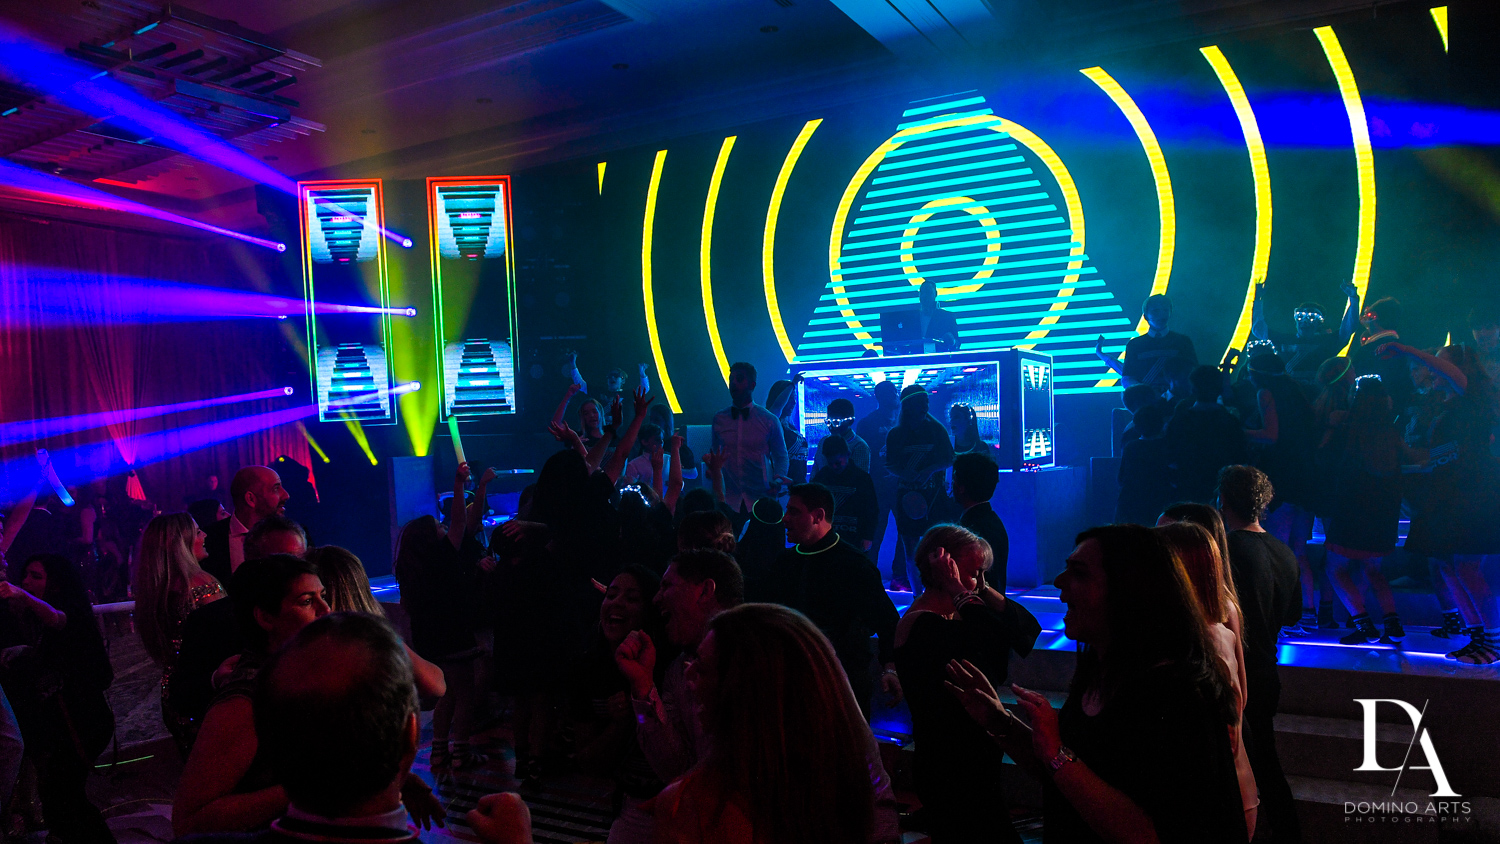 laser lighting at Luxury Celebrity Bat Mitzvah at Four Seasons Hotel Miami by Domino Arts Photographylaser lighting